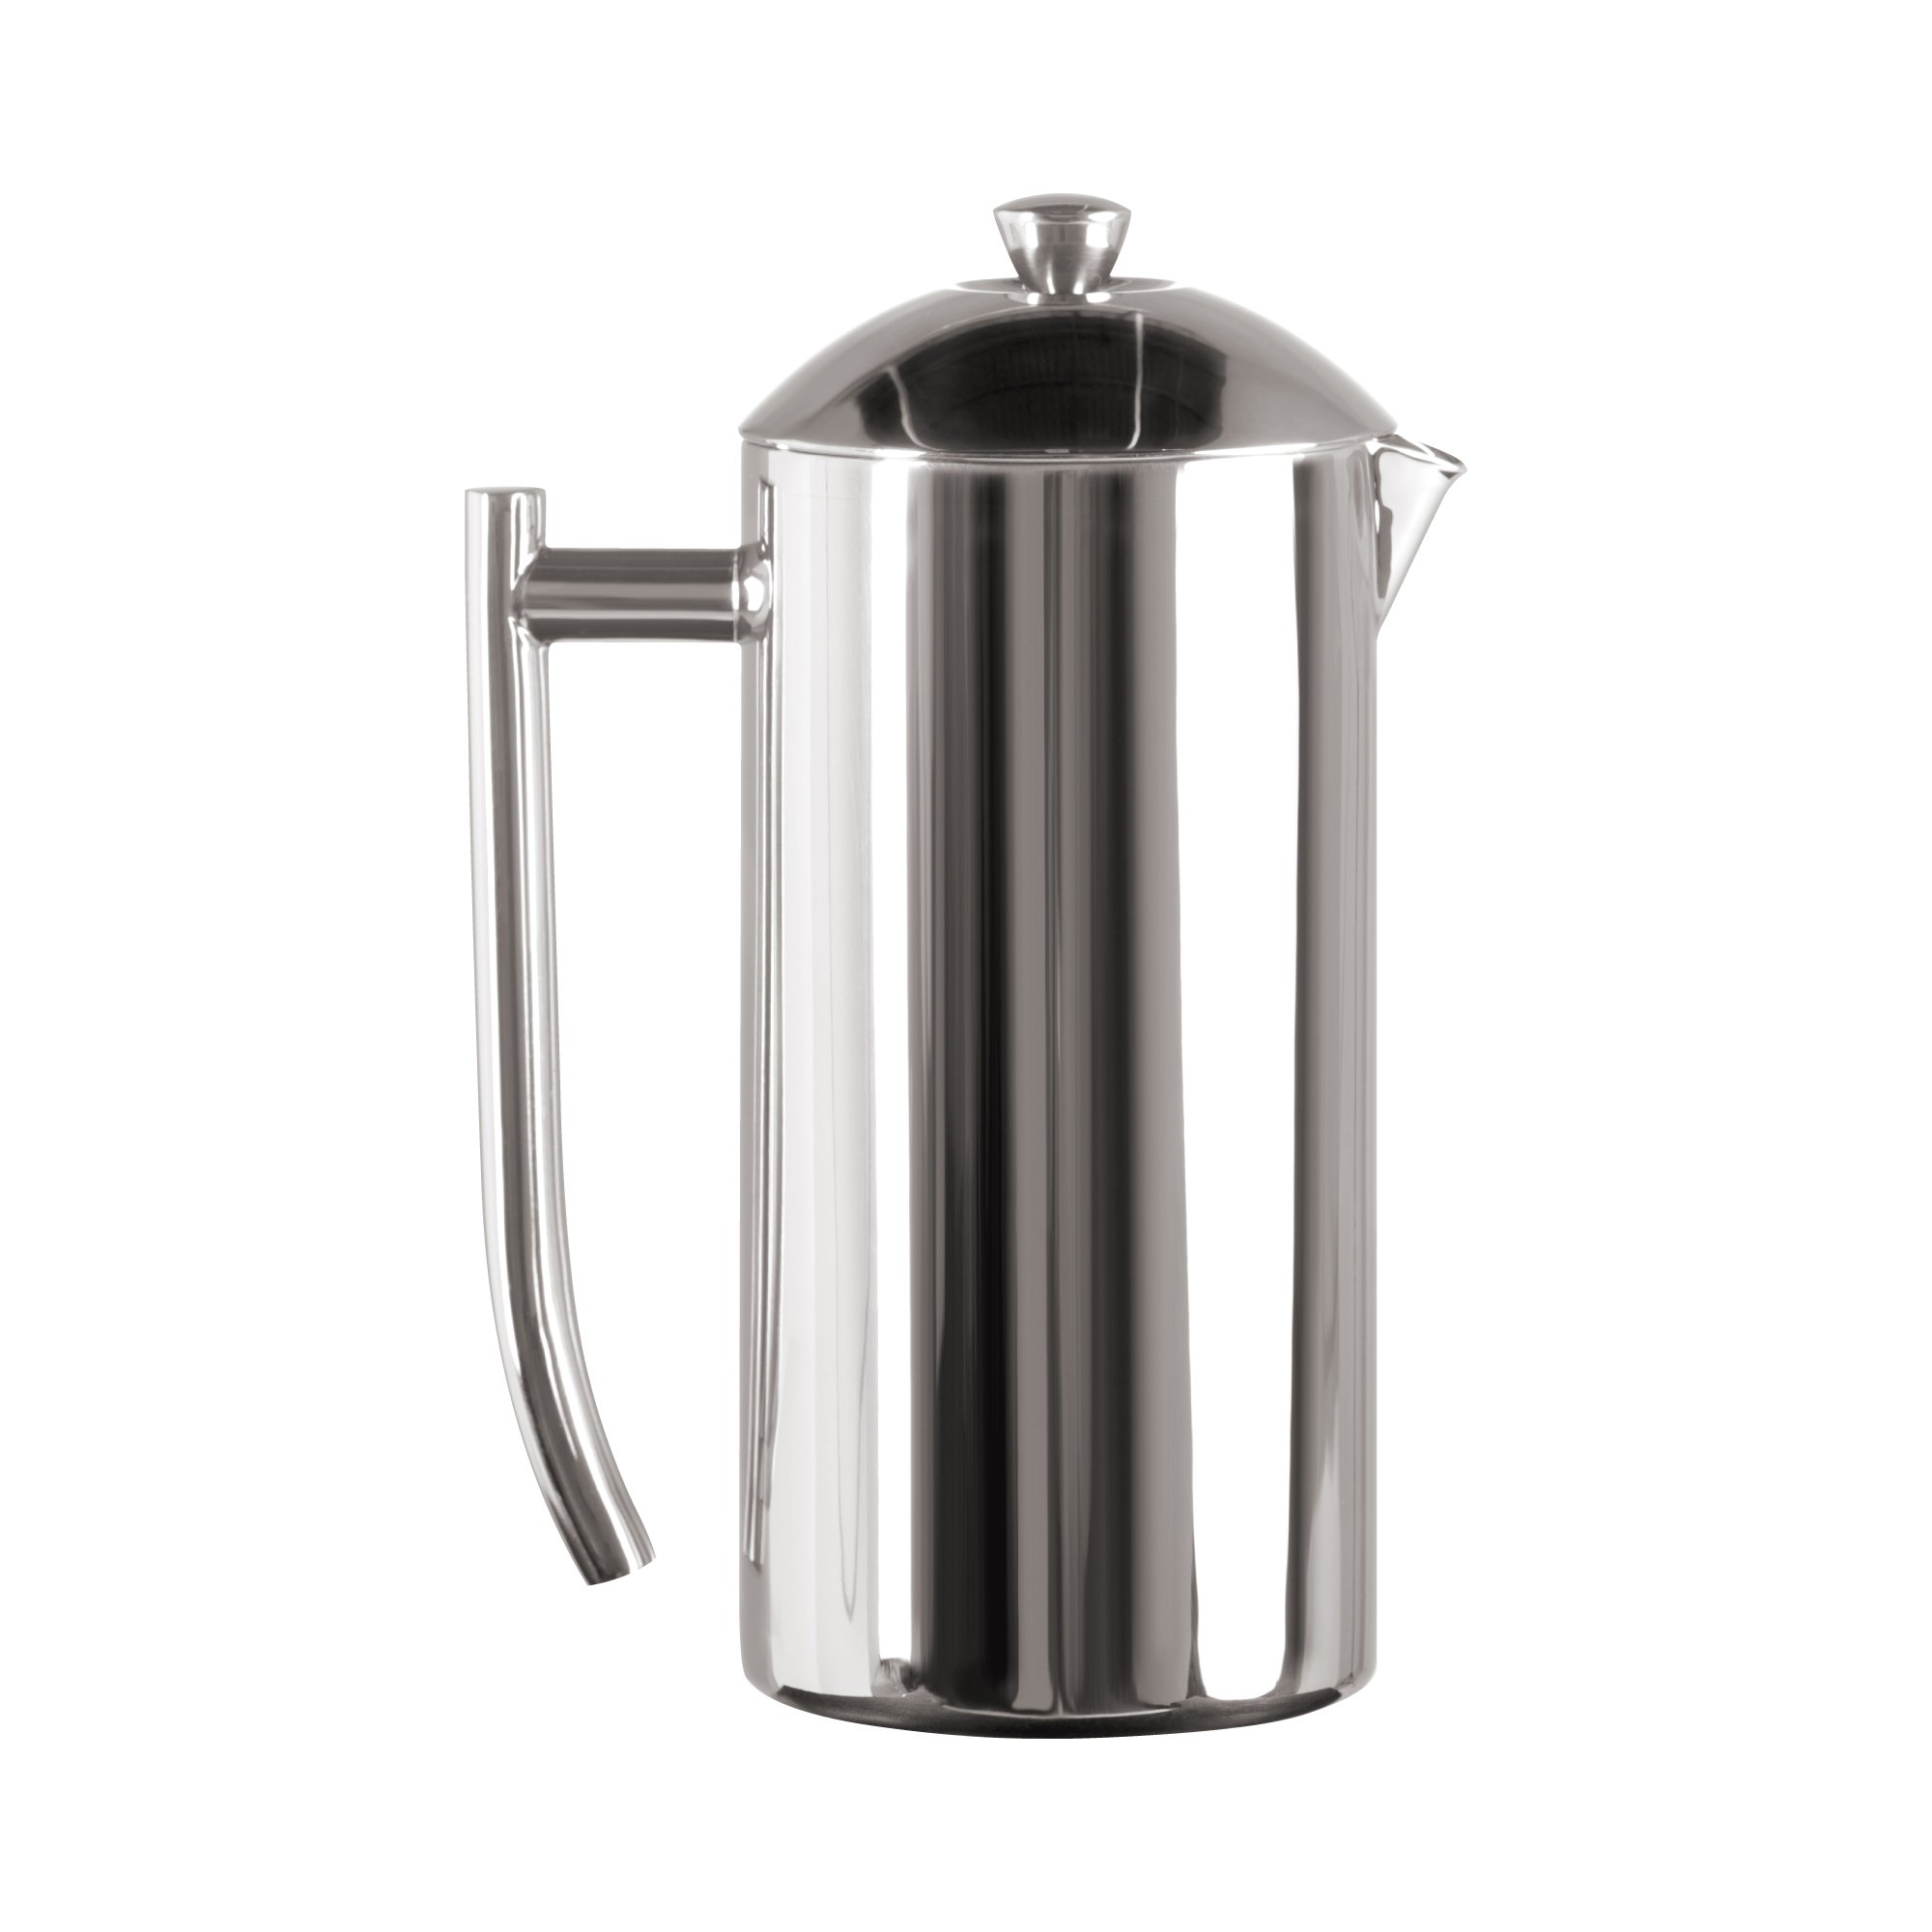 Frieling French Press Coffee Maker with Patented Dual Screen in Frustration Free Packaging, Zero Sediment, 18/10 Stainless Steel, No-drip Spout, Retains Heat 4x Longer Than Glass, Polished, 36-Ounce... by Frieling